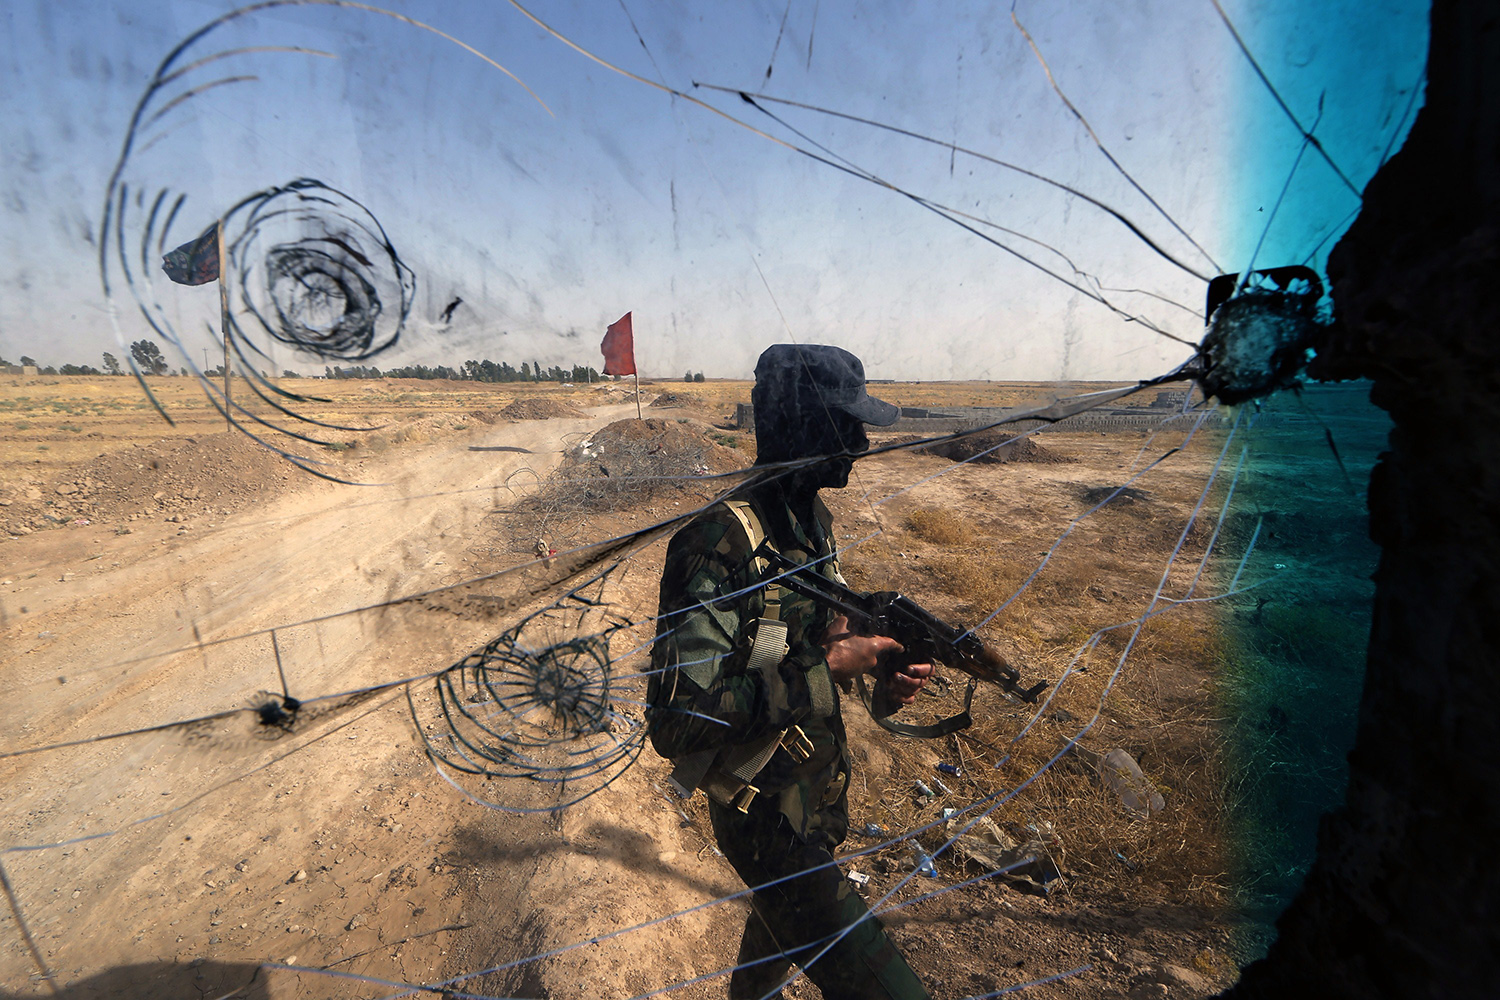 June 21, 2014. Iraqi Turkmen forces patrol a checkpoint in the northern town of Taza Khormato, 20 kms south of Kirkuk, close to locations of jihadist Islamic State of Iraq and the Levant (ISIL) fighters.